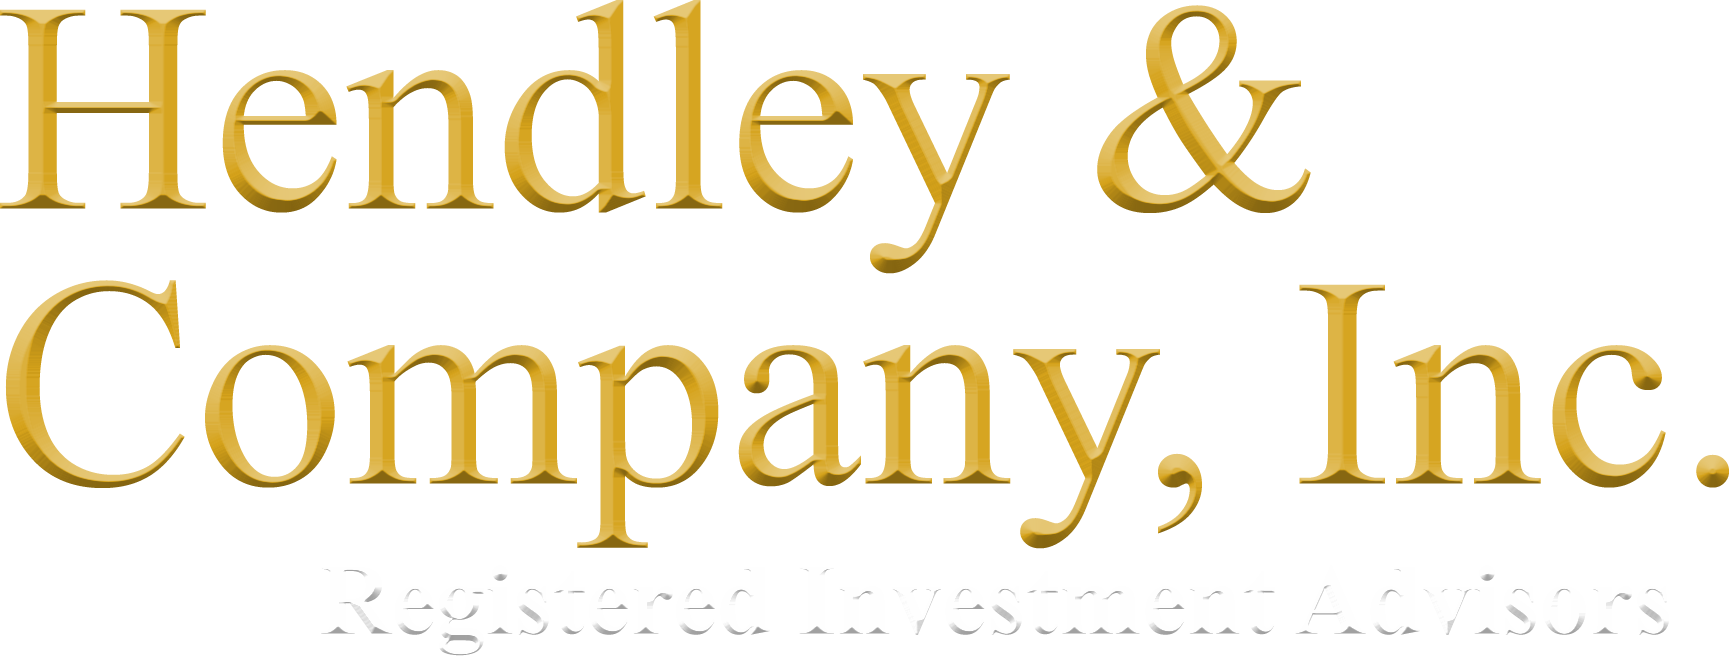 Hendley & Company, Inc.